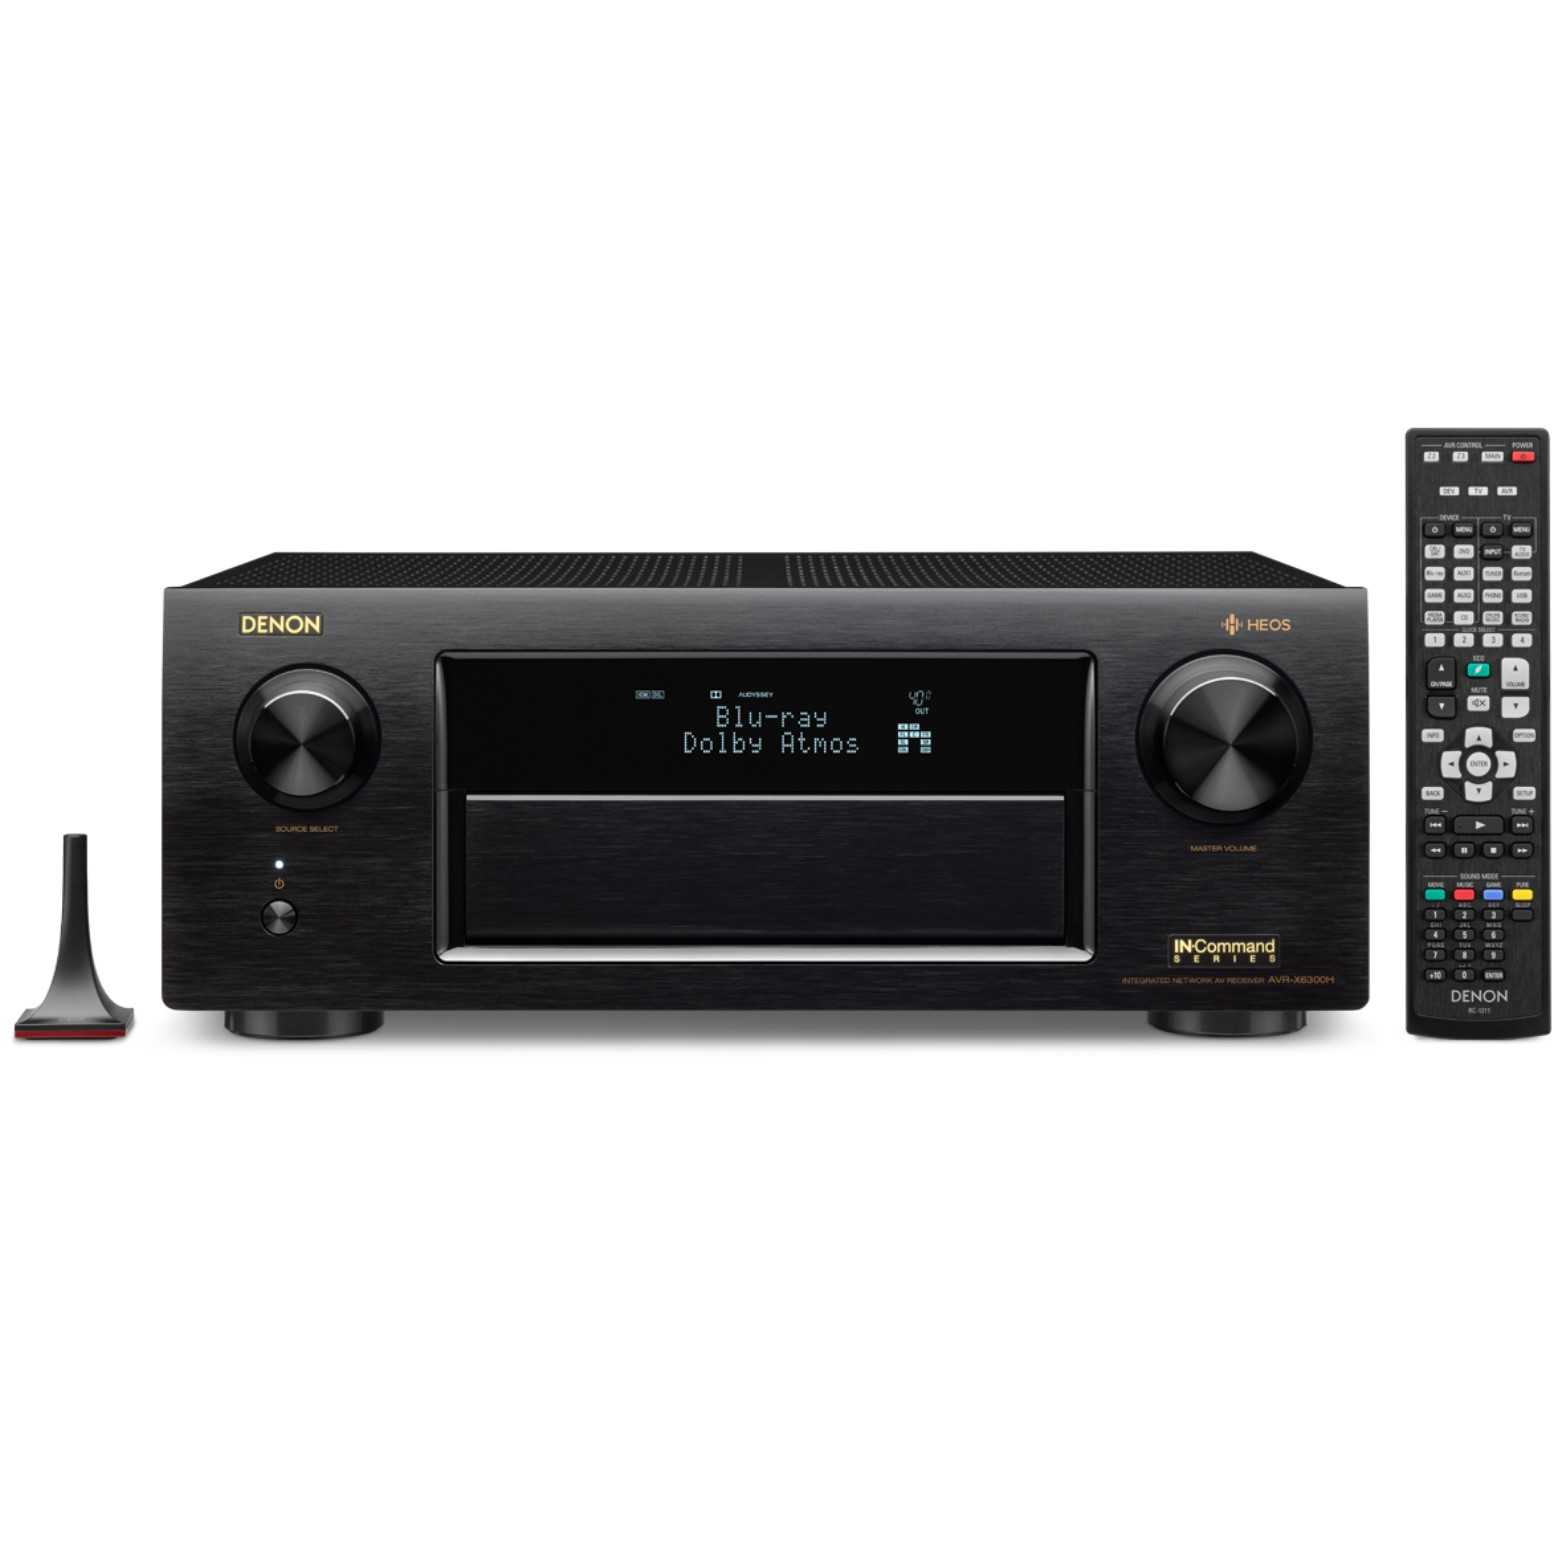 Denon AVR-X6300H 11.2-Channel Full 4K Ultra HD A/V Receiver with Built-In HEOS Wireless Technology